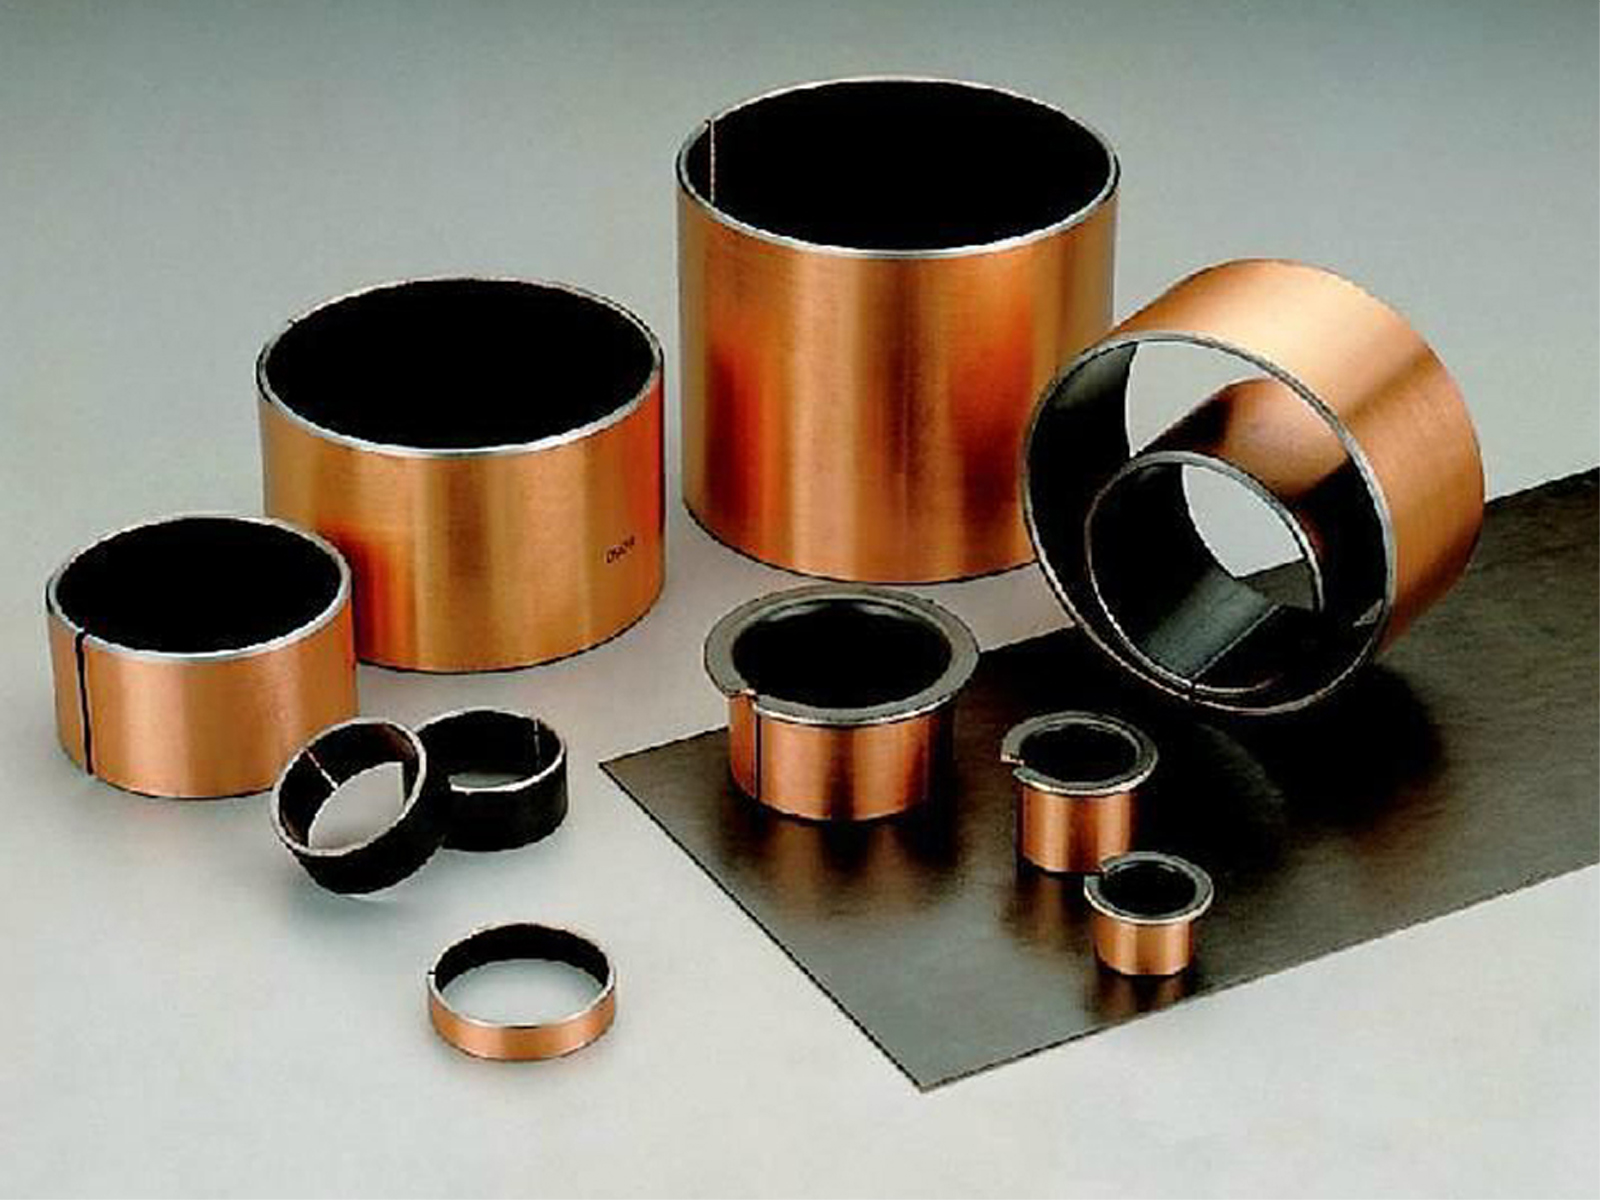 1Pc SF-1 0510 5 X 7 X 10 Mm Self Lubricating Composite Bearing Bushing Sleeve SF1 050710 High-quality *